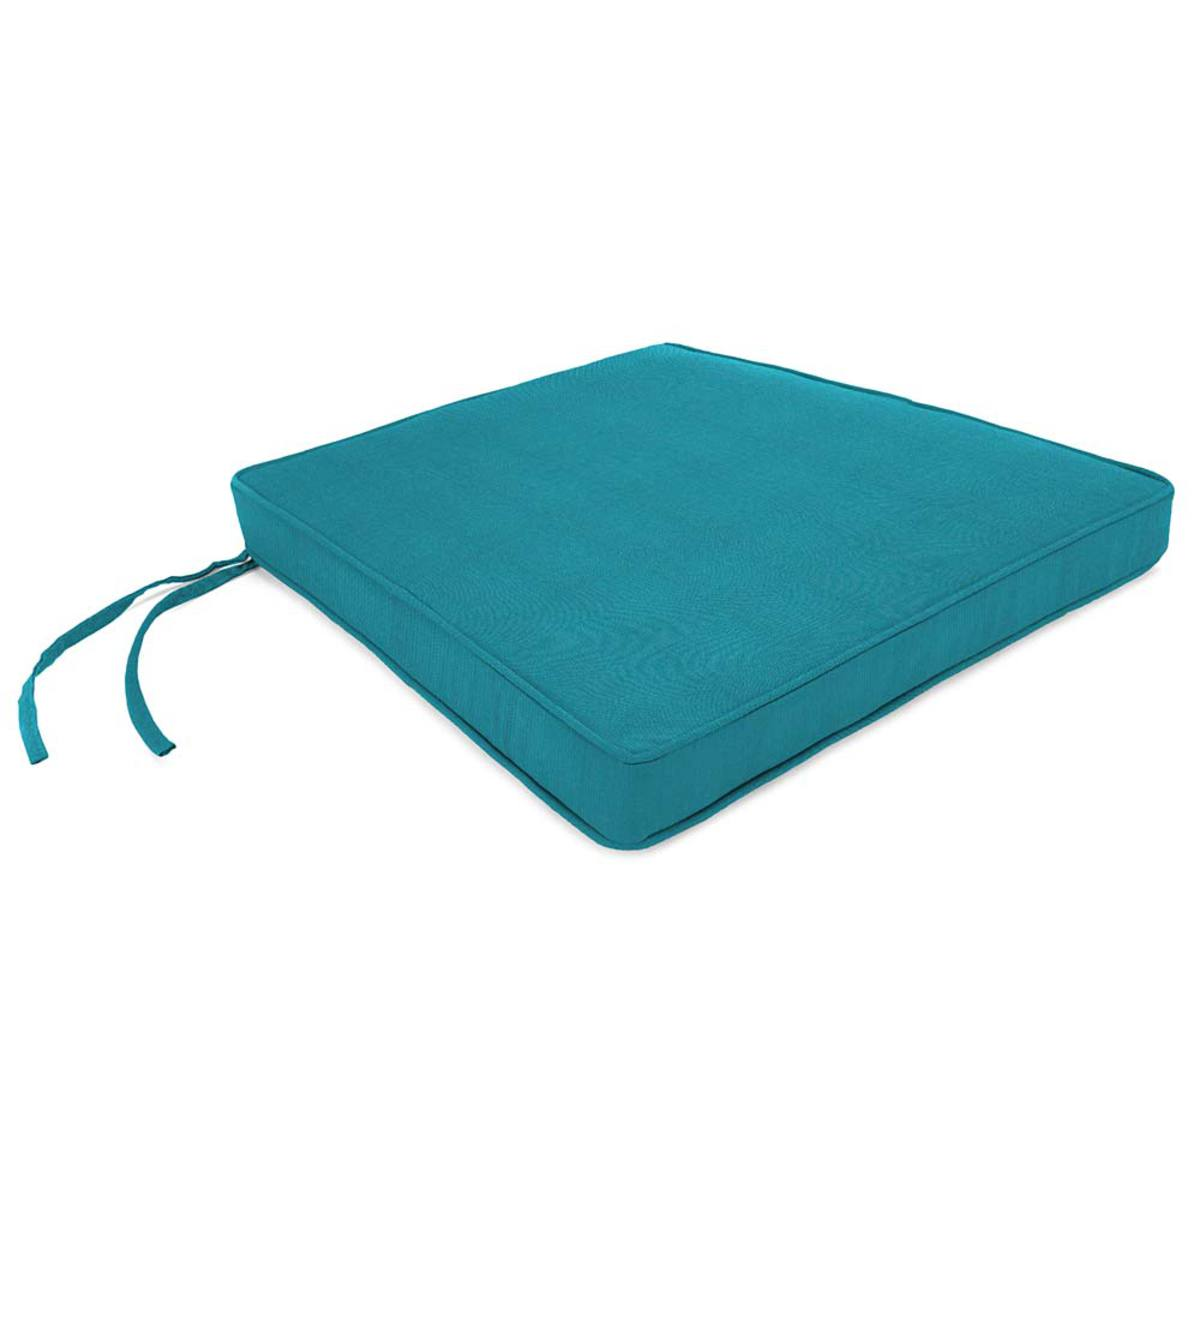 "Deluxe Sunbrella™ Square Cushion with ties 19-3/4""x 17-3/4""x 3"""